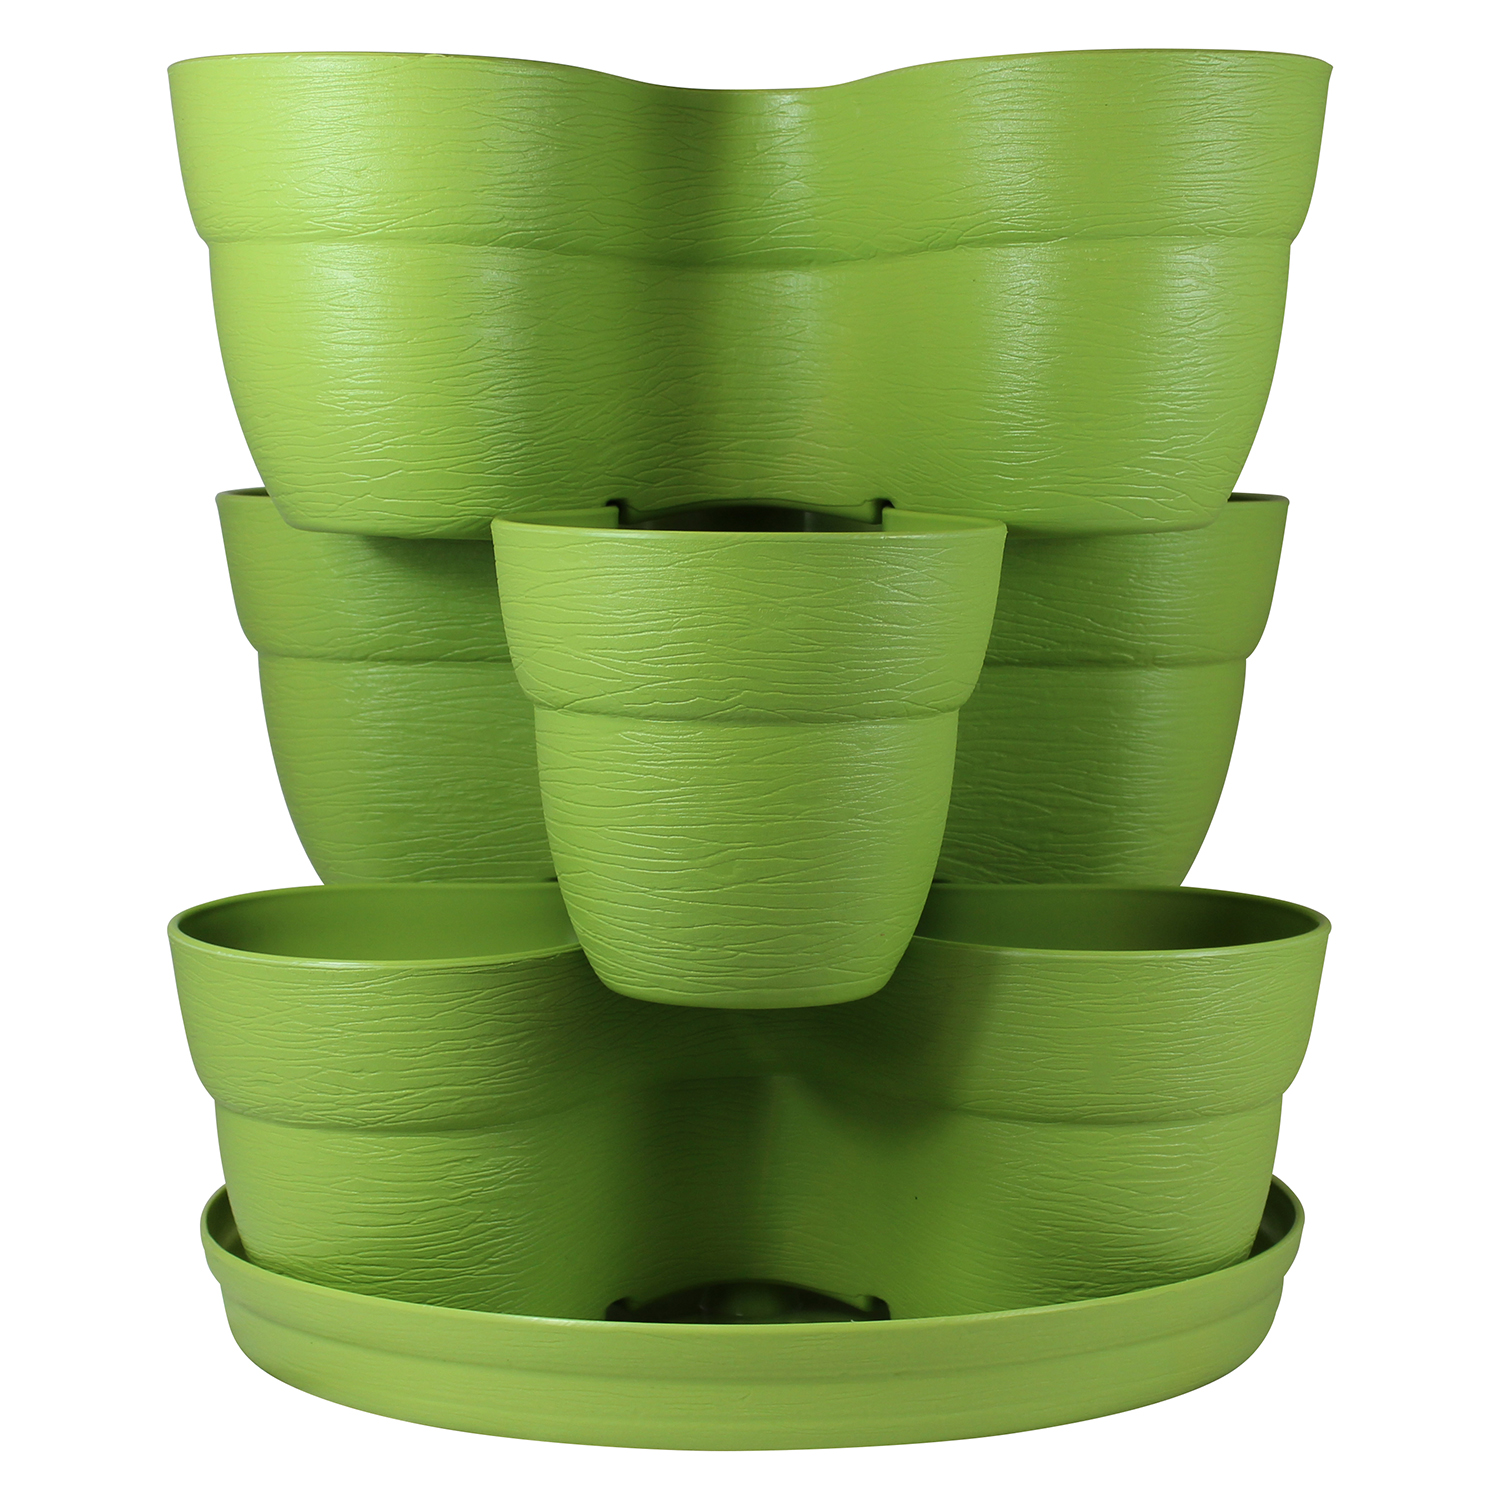 Bloomers Stackable Flower Tower Planter – Holds up to 9 Plants – Great Both Indoors and Outdoors – Sage Green